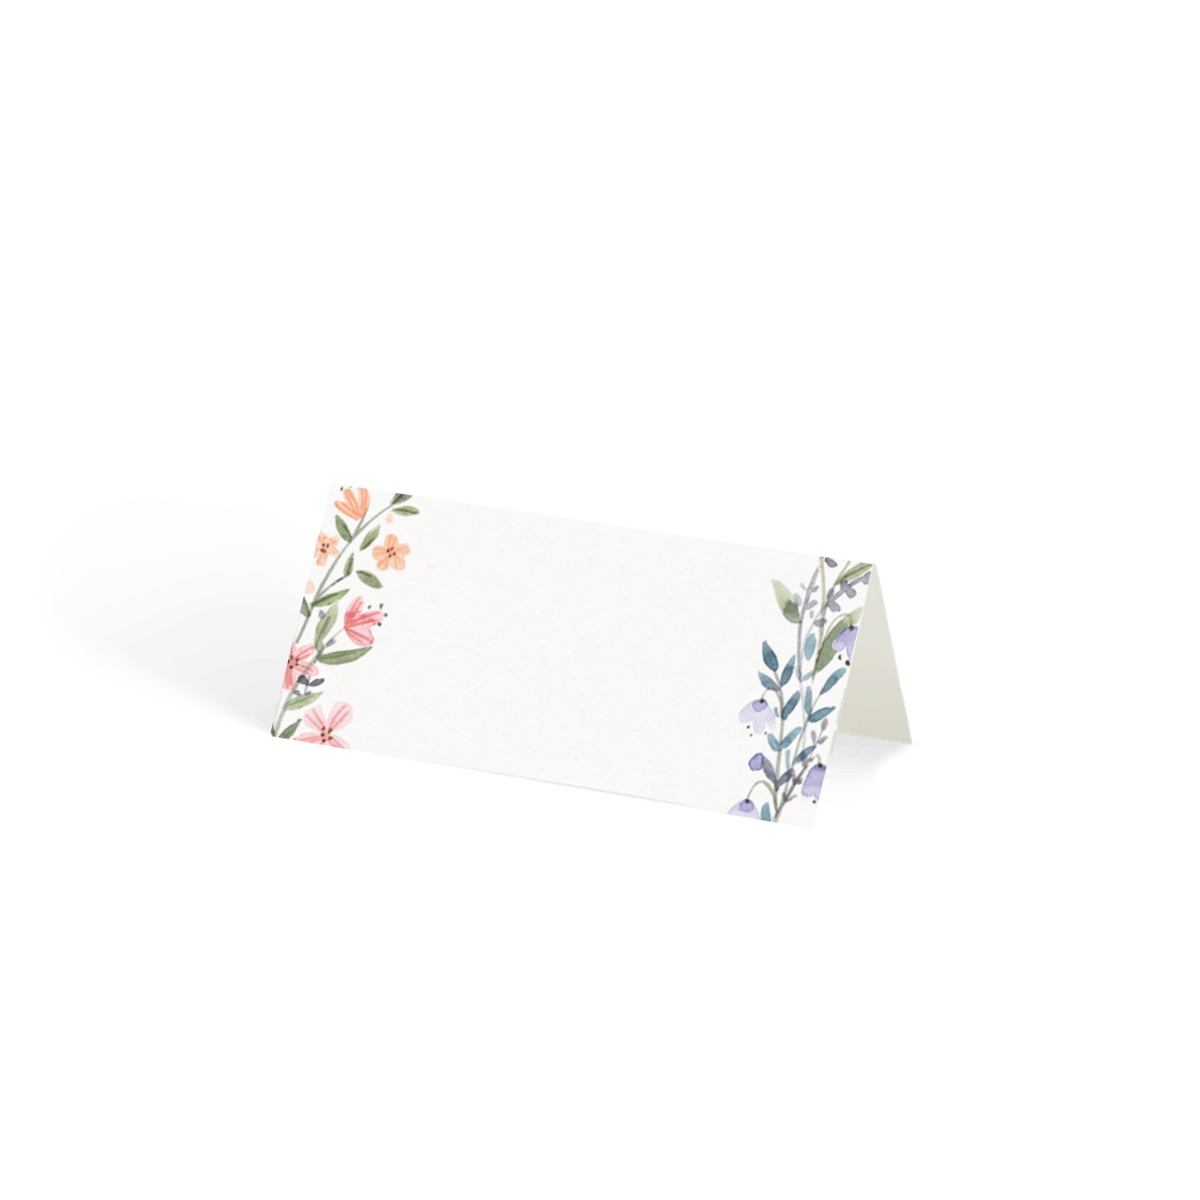 Https%3a%2f%2fwww.papier.com%2fproduct image%2f81505%2f8%2fspring wildflowers 19577 avant 1561977629.png?ixlib=rb 1.1